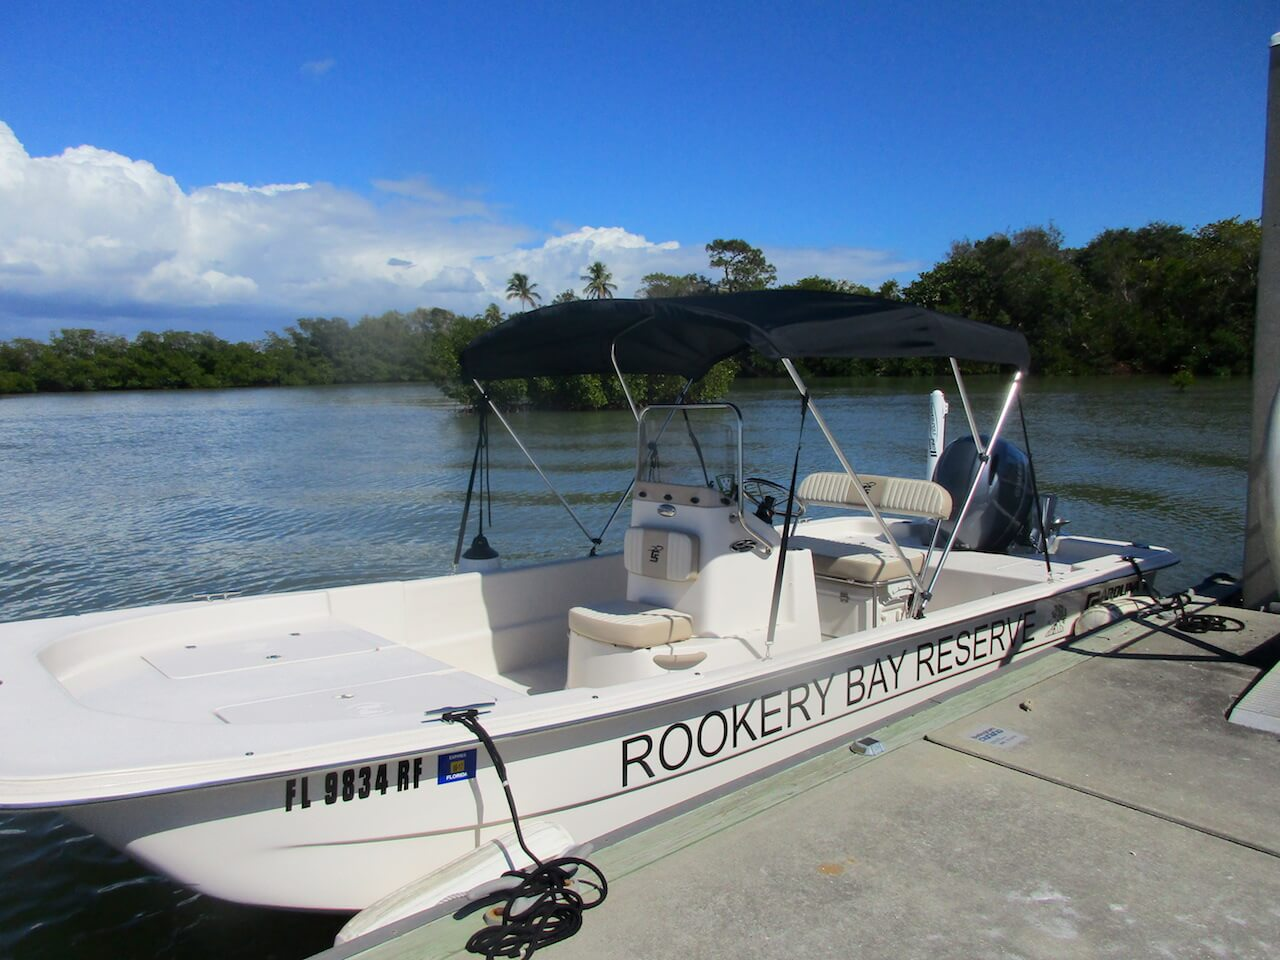 Taking a boat tour of Rookery Bay Reserve is a wonderful way to learn about Florida history, plants, and wildlife with access to areas of significance. Must Do Visitor Guides, MustDo.com.